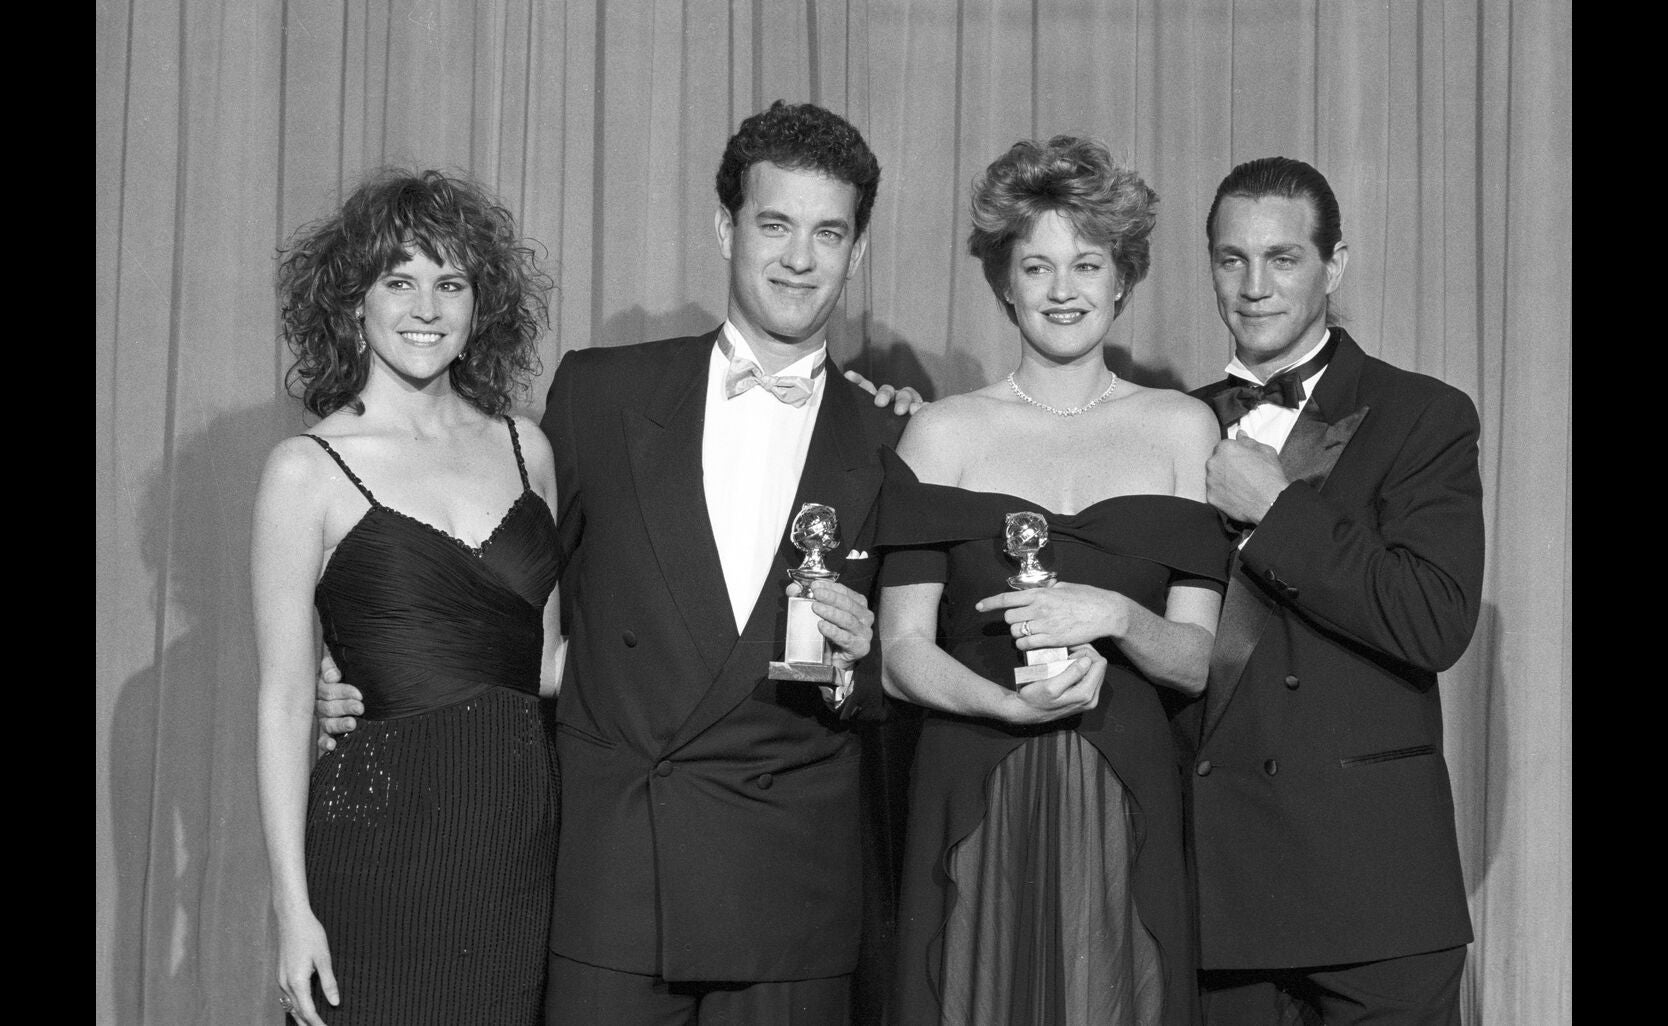 1989_gg46_tom_hanks_melanie_griffith_best_actor_actress_comedy-big_working_girl_ally_sheedy_eric_roberts_n